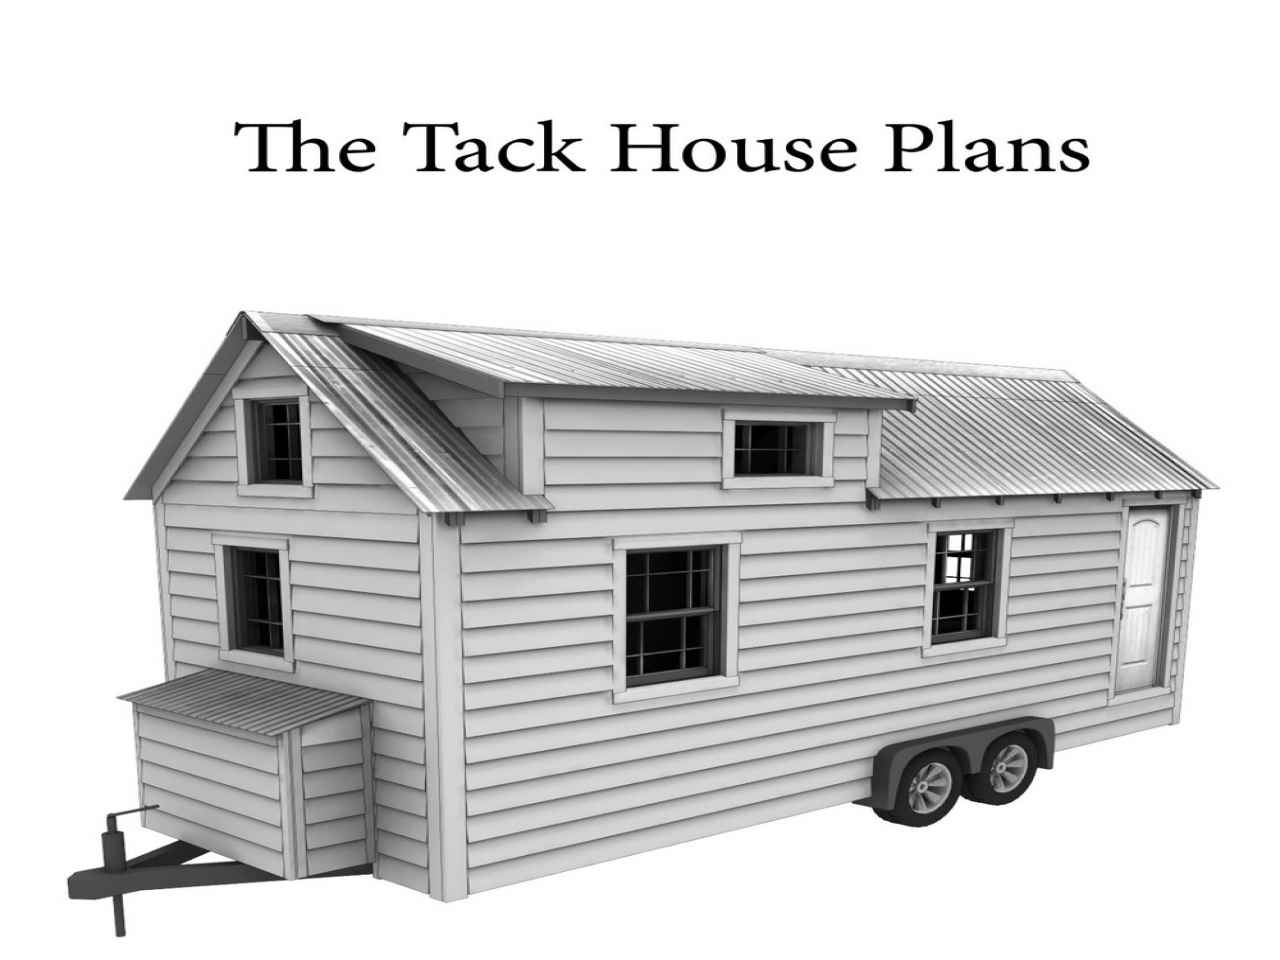 Tiny victorian house plans free tiny house plans tiny for Victorian birdhouse plans free